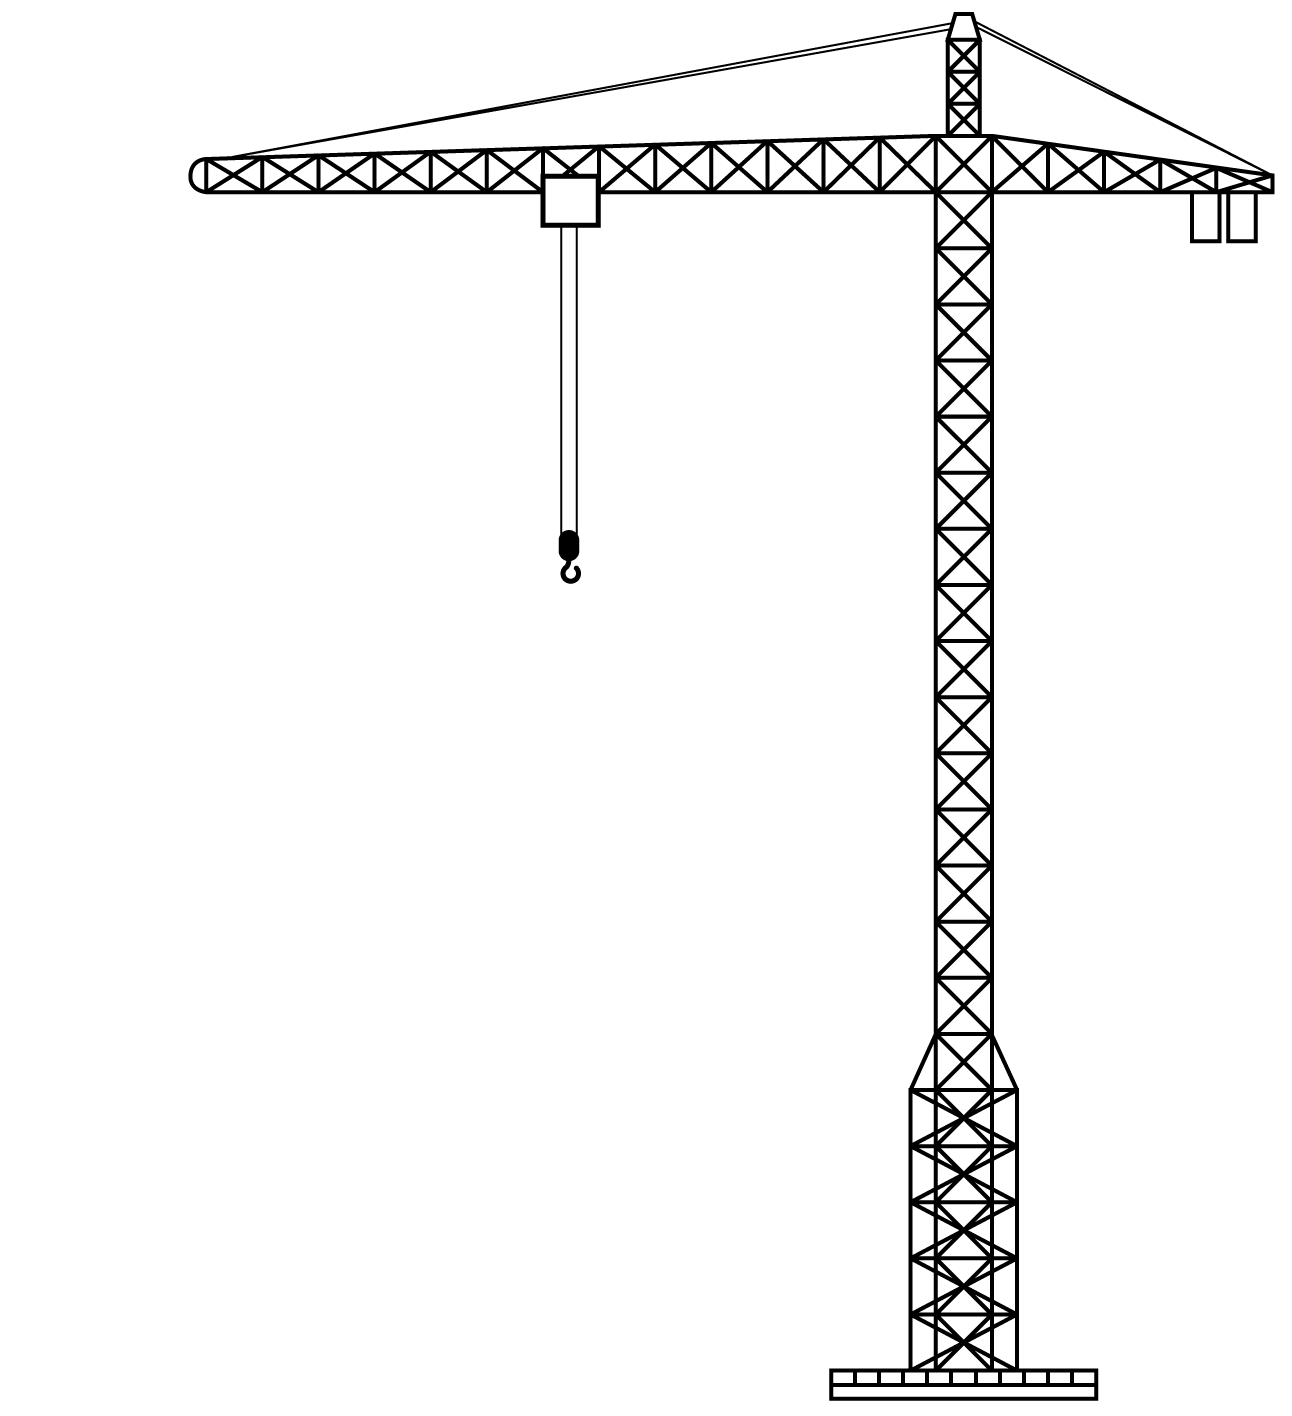 Tower clipart coloring page. Crane transparent png stickpng